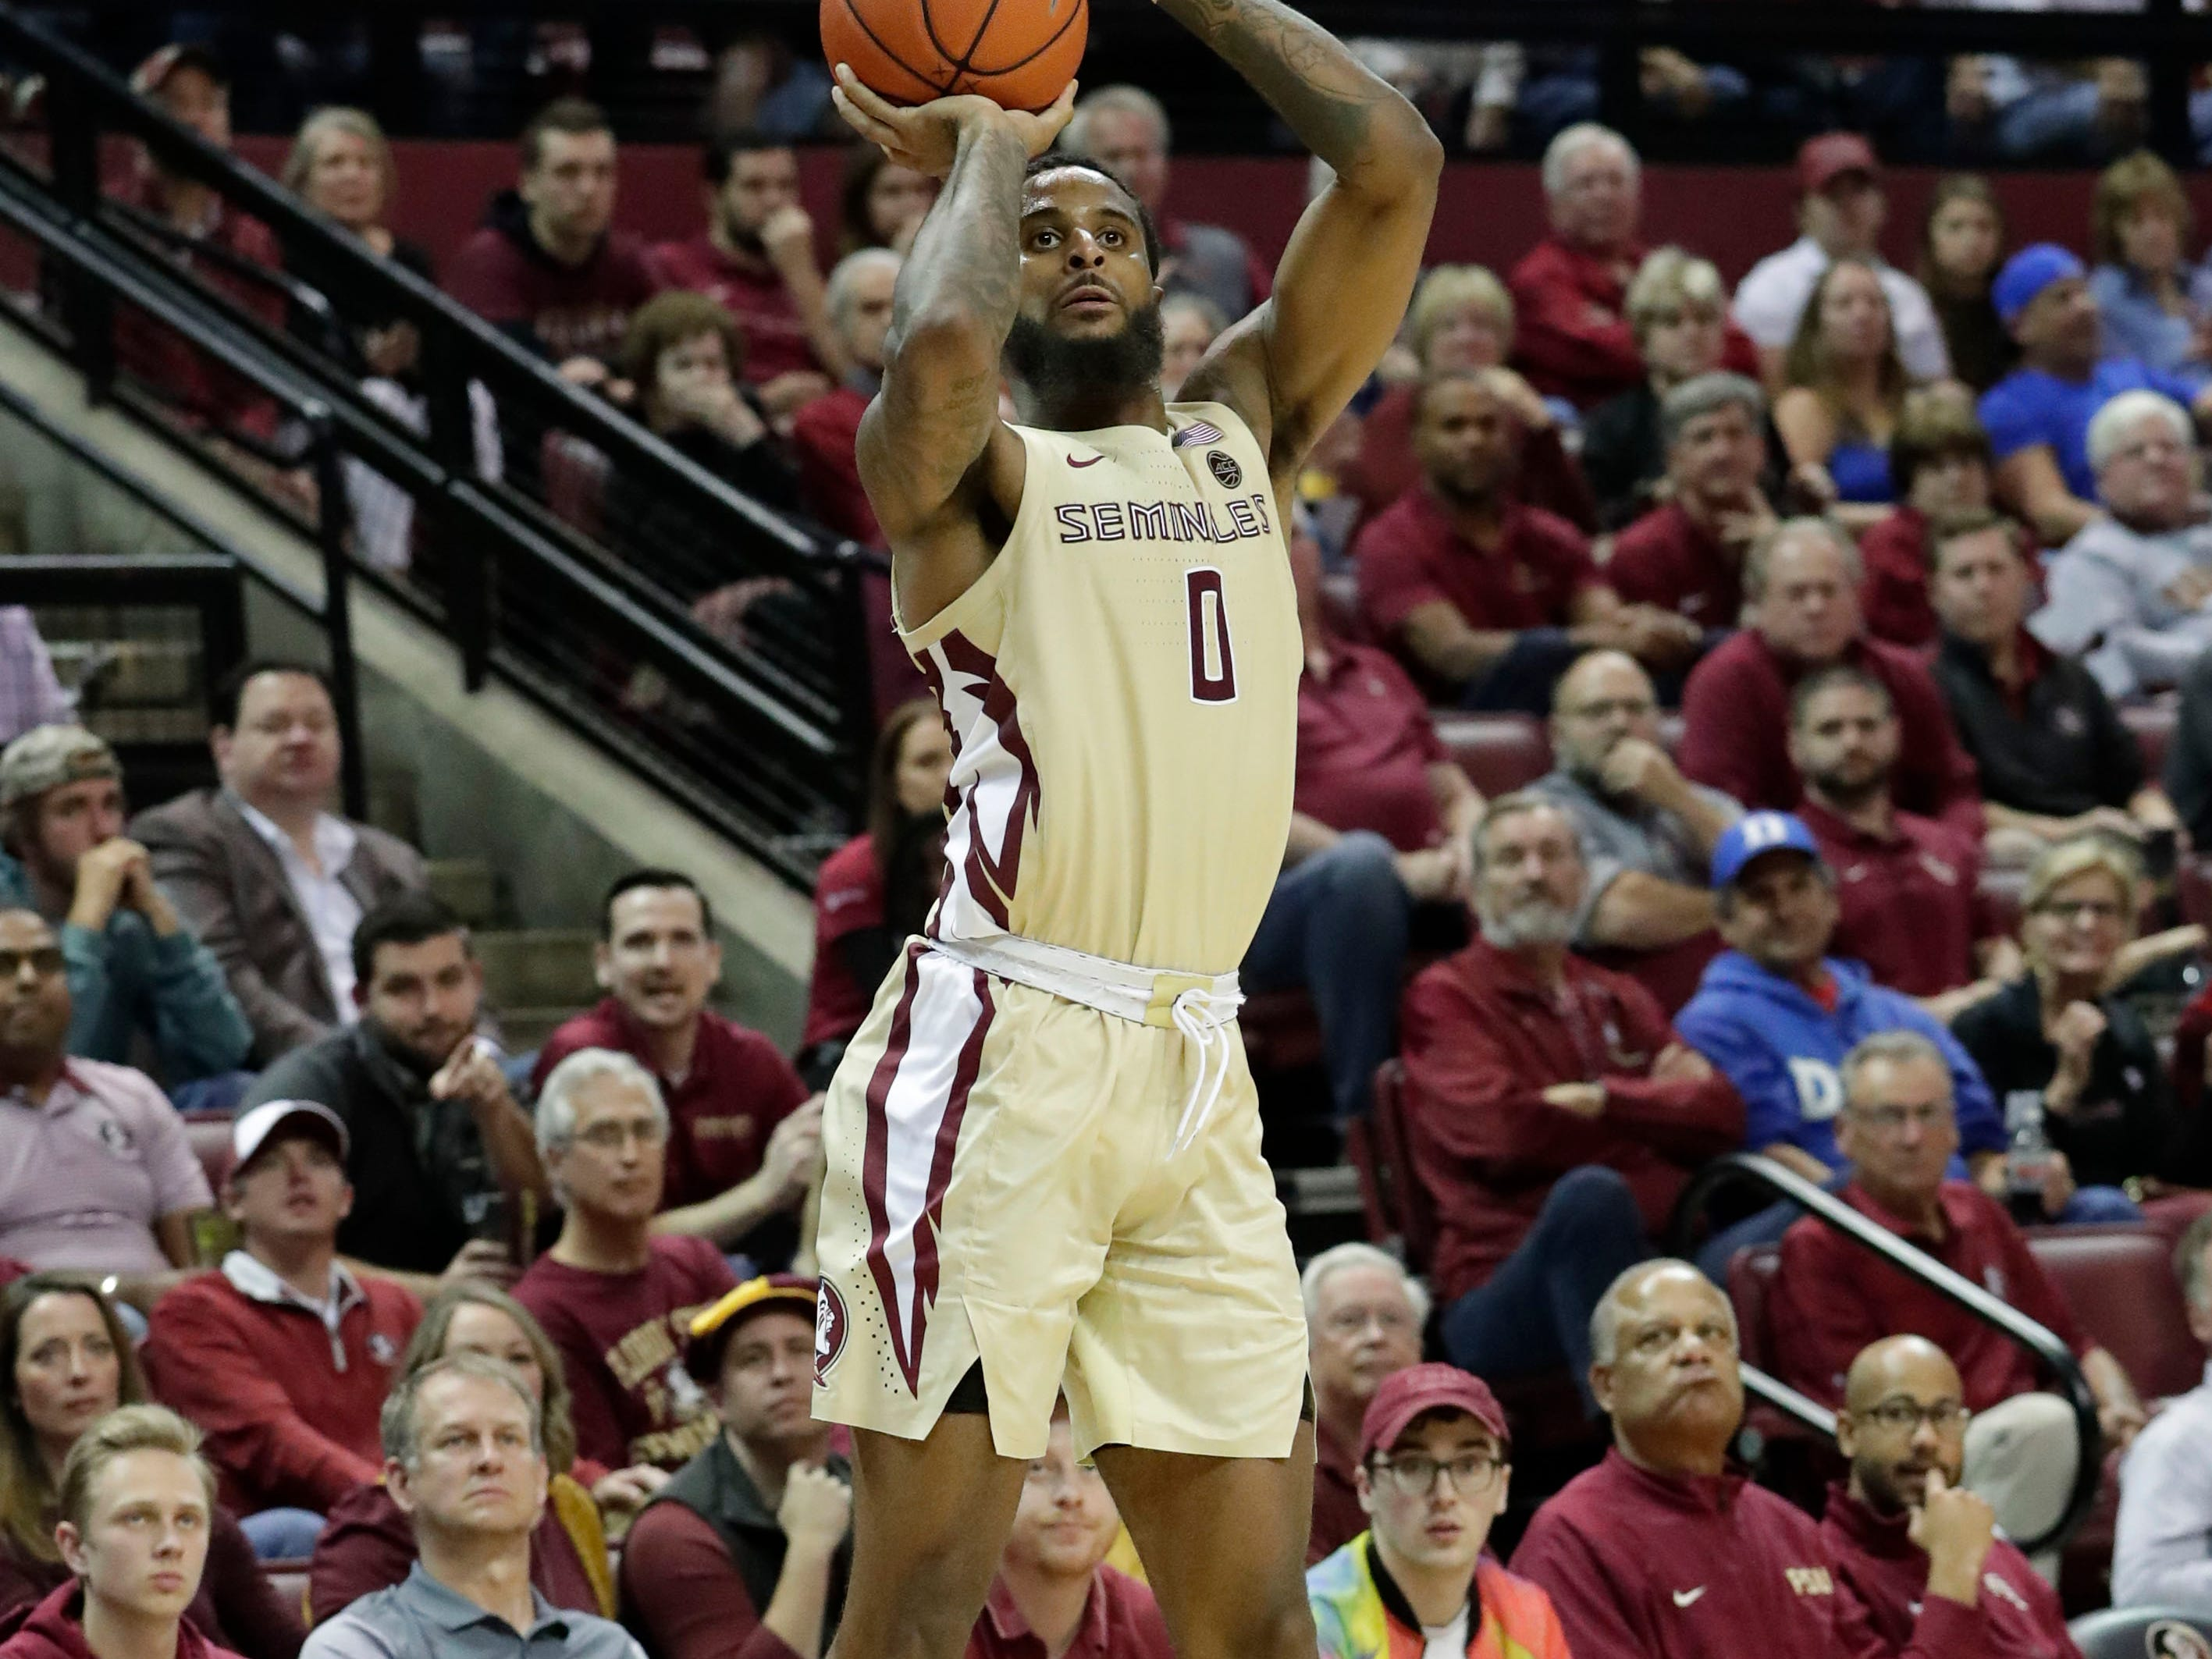 Florida State Seminoles forward Phil Cofer (0) shoots for three. Ranked 13 in the ACC, the Florida State Seminoles host the number 1 team, the Duke Blue Devils, at the Tucker Civic Center, Saturday, Jan. 12, 2019.